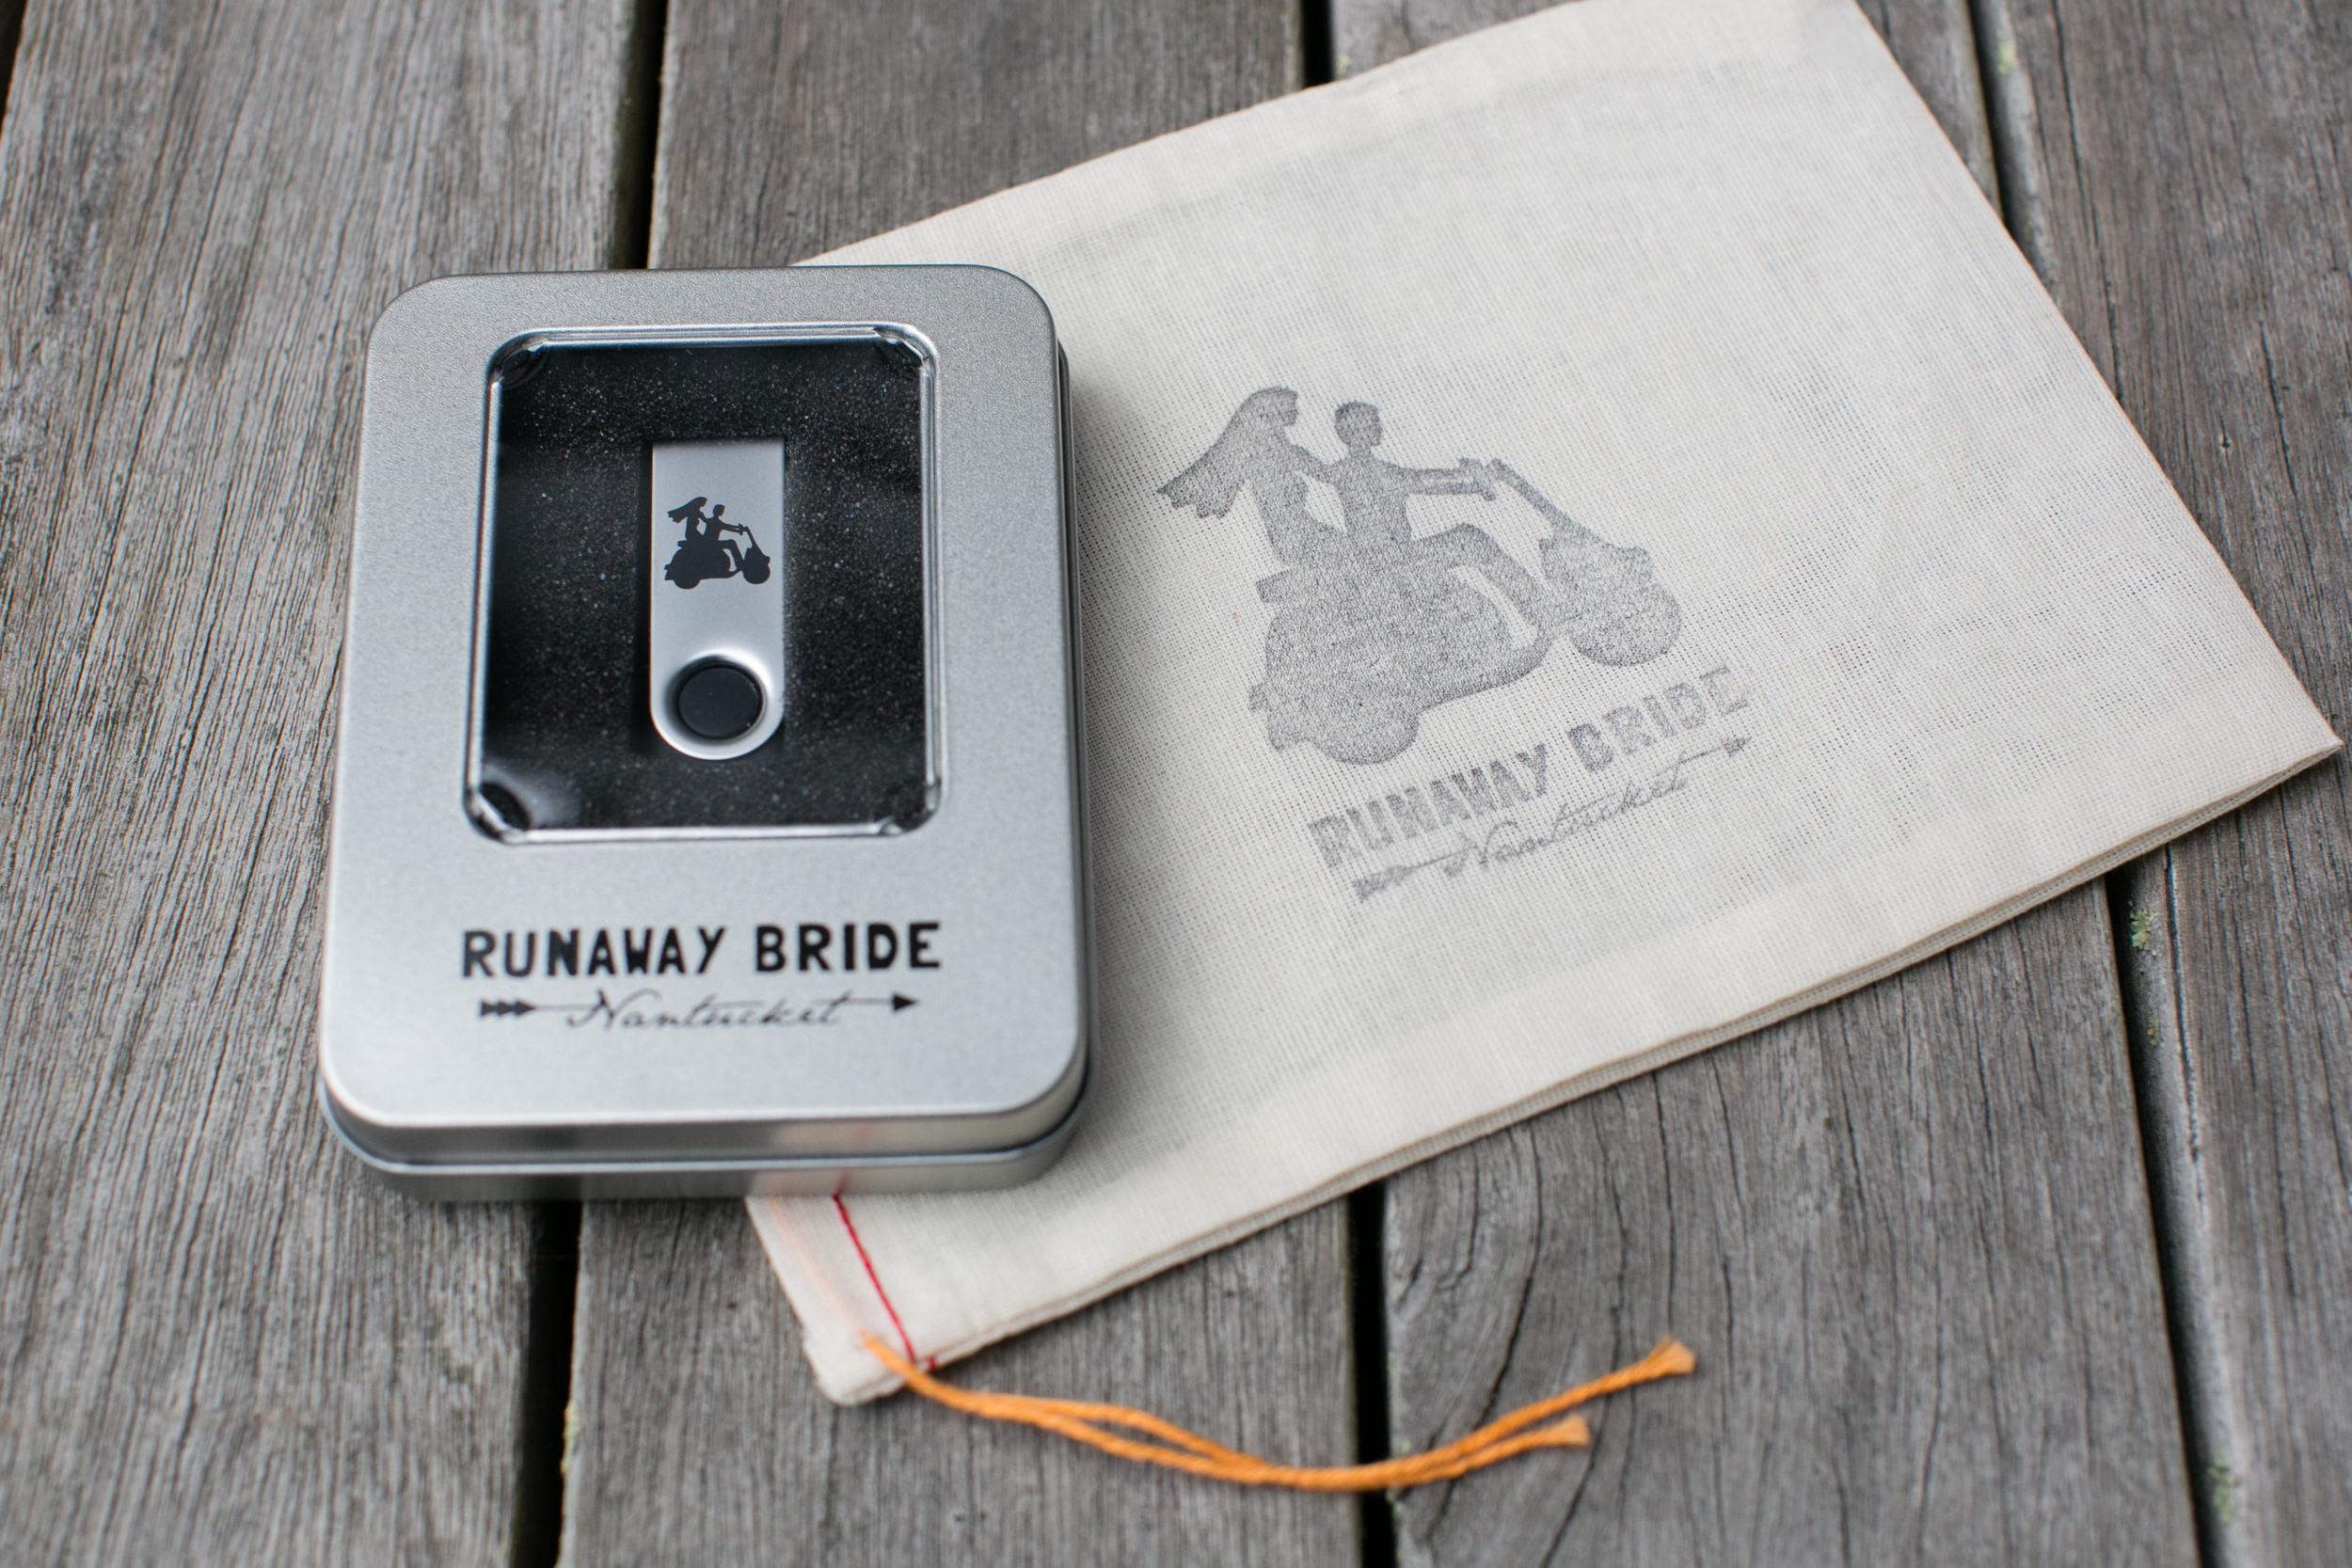 // USB drive and keepsake carrying case.    $150.00 each.